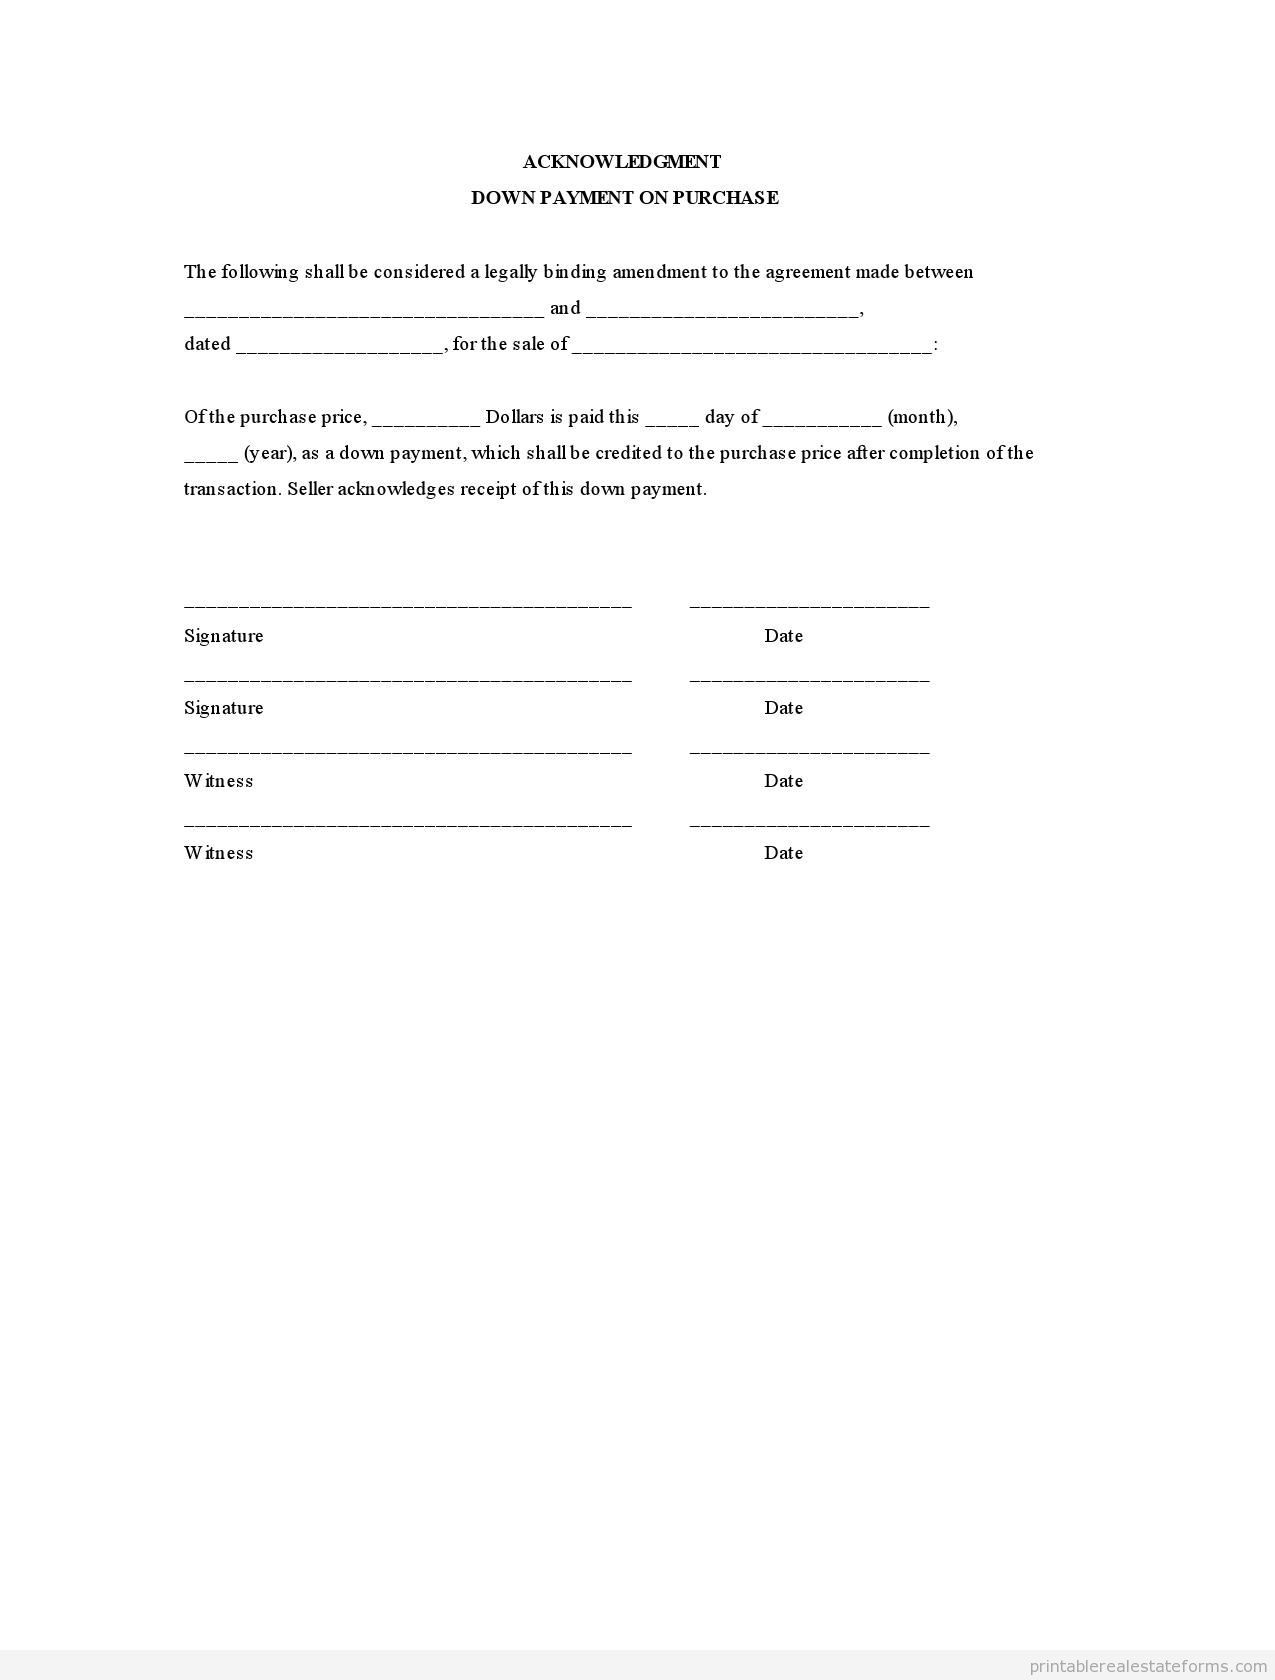 sample printable acknowledgment down payment on purchase form